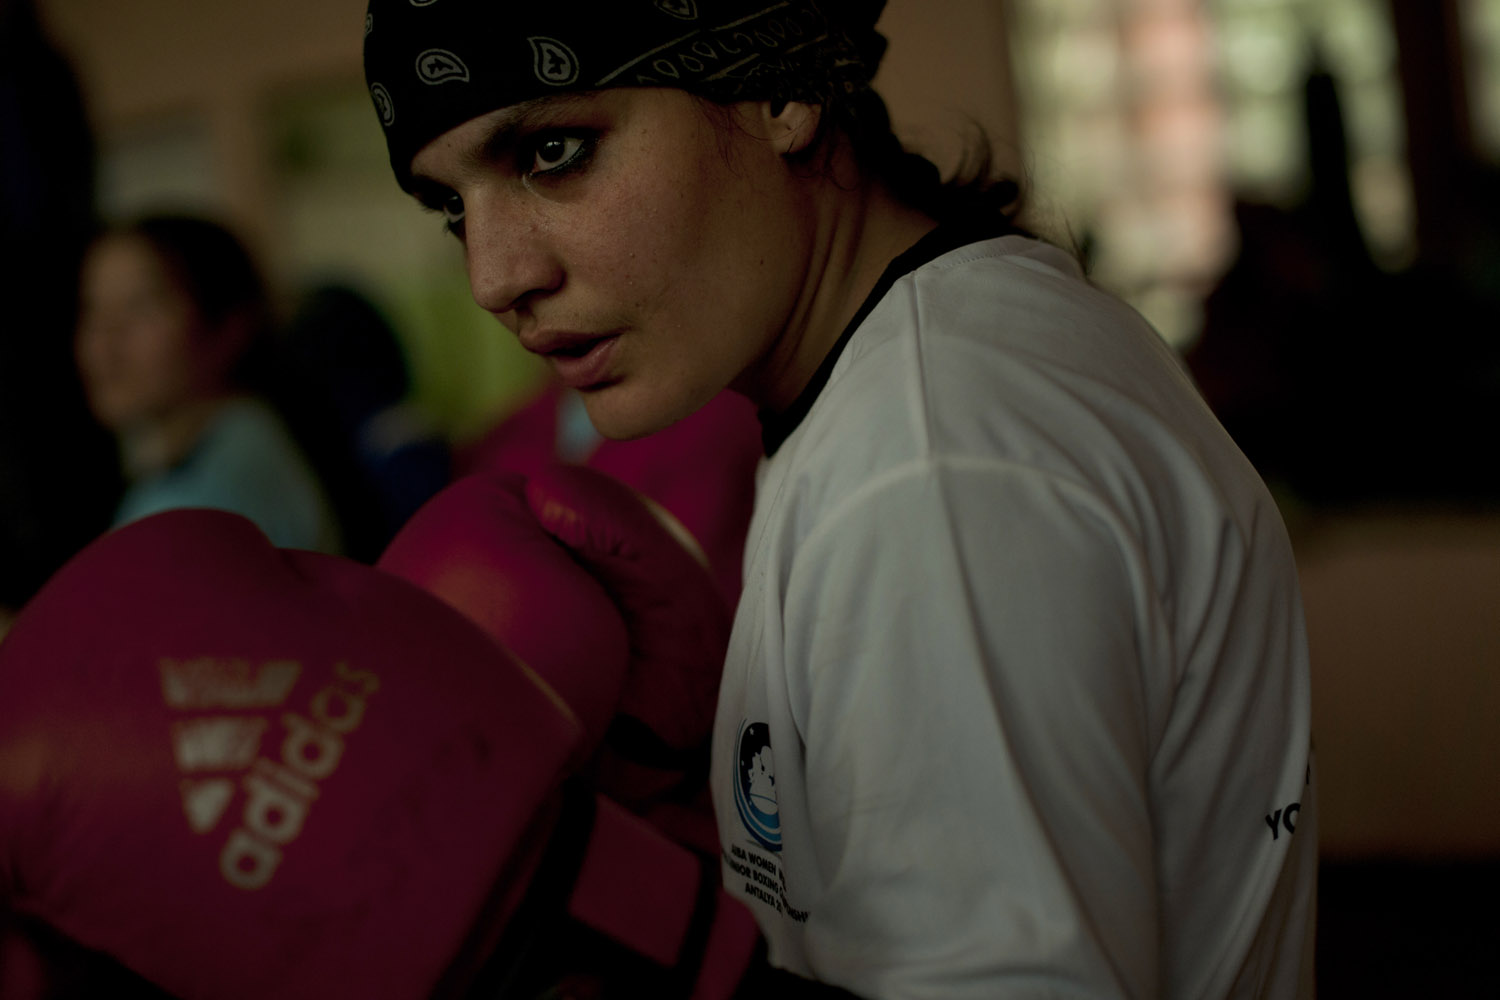 Rahimi was first inspired to fight after watching a video of professional boxer Laila Ali, Muhammad Ali's daughter, on YouTube